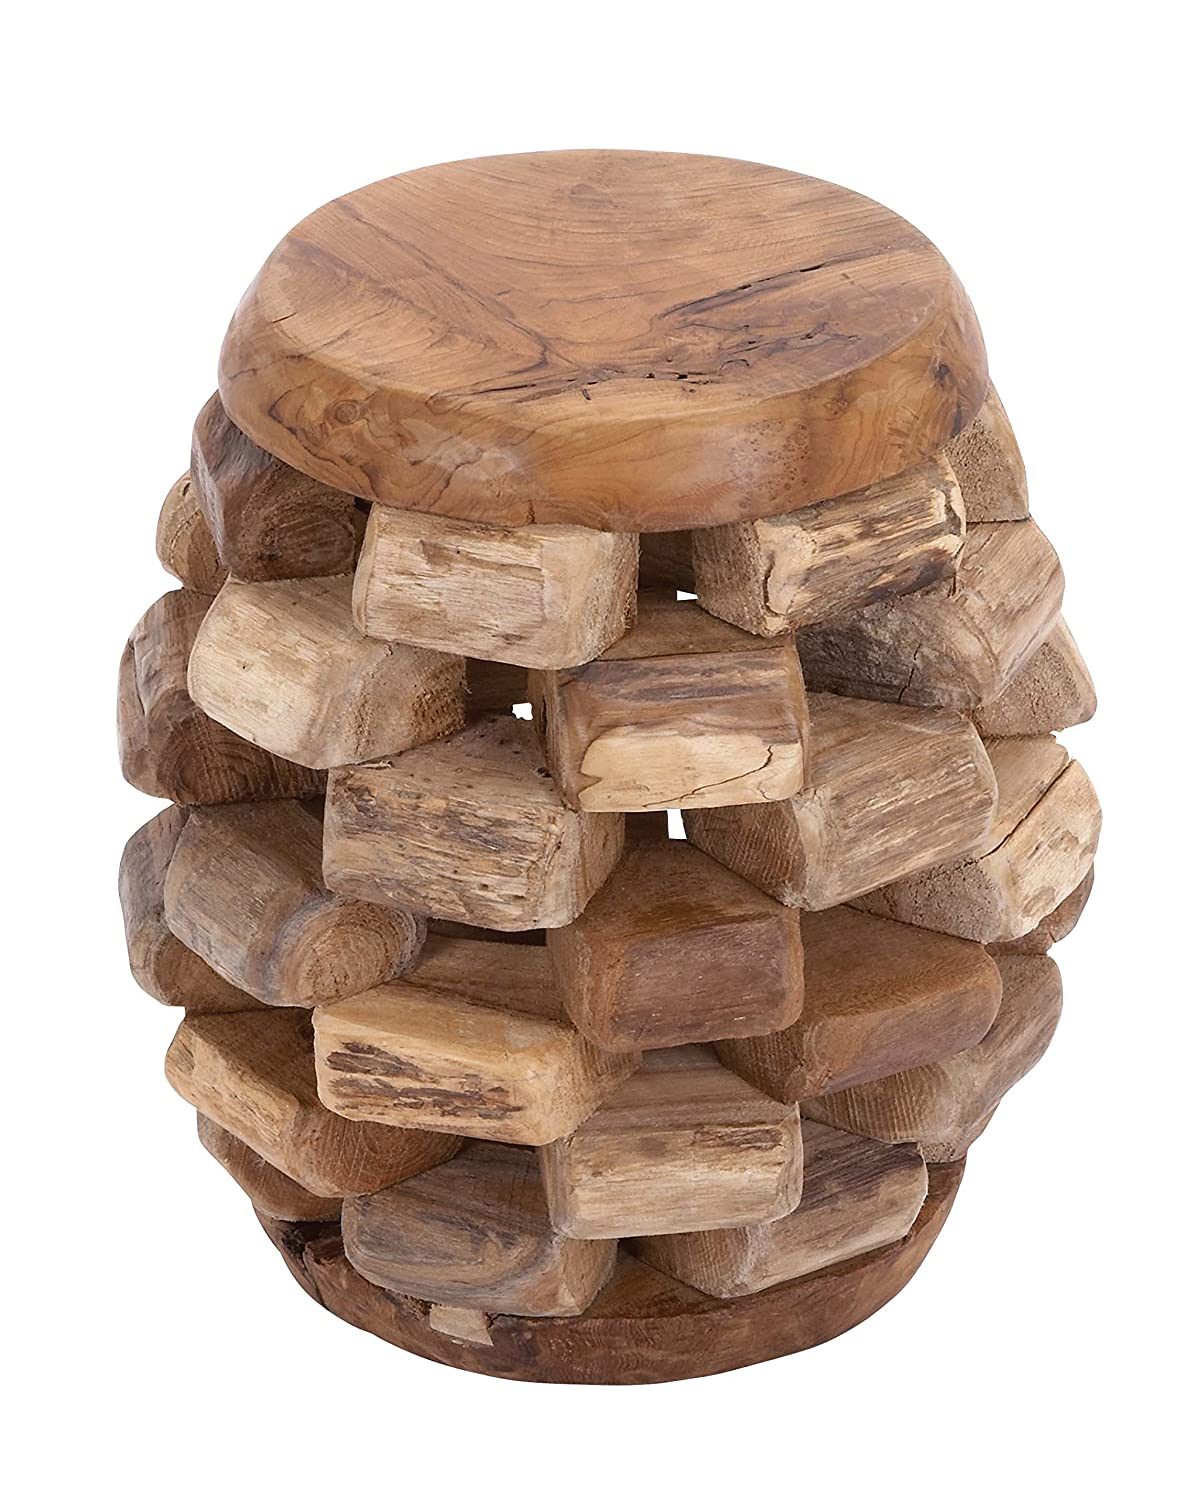 Deco 79 38424 Wood Teak Stool, 15